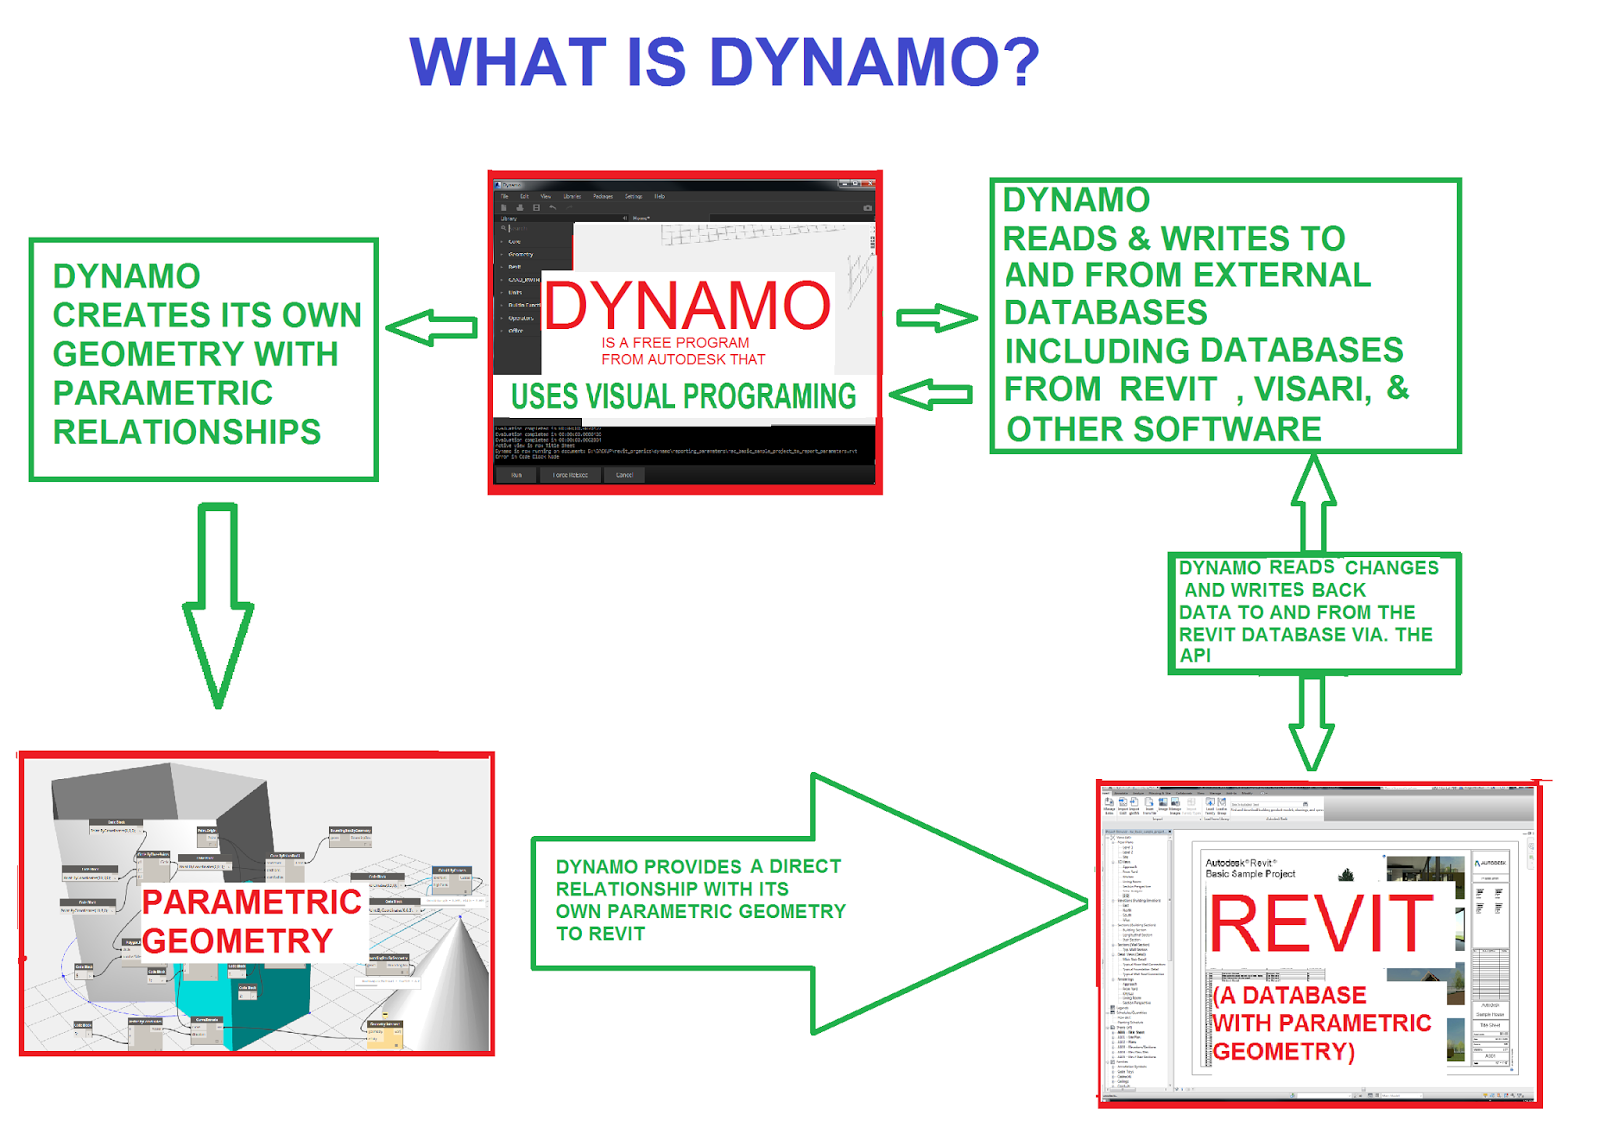 WHAT IS DYNAMO?